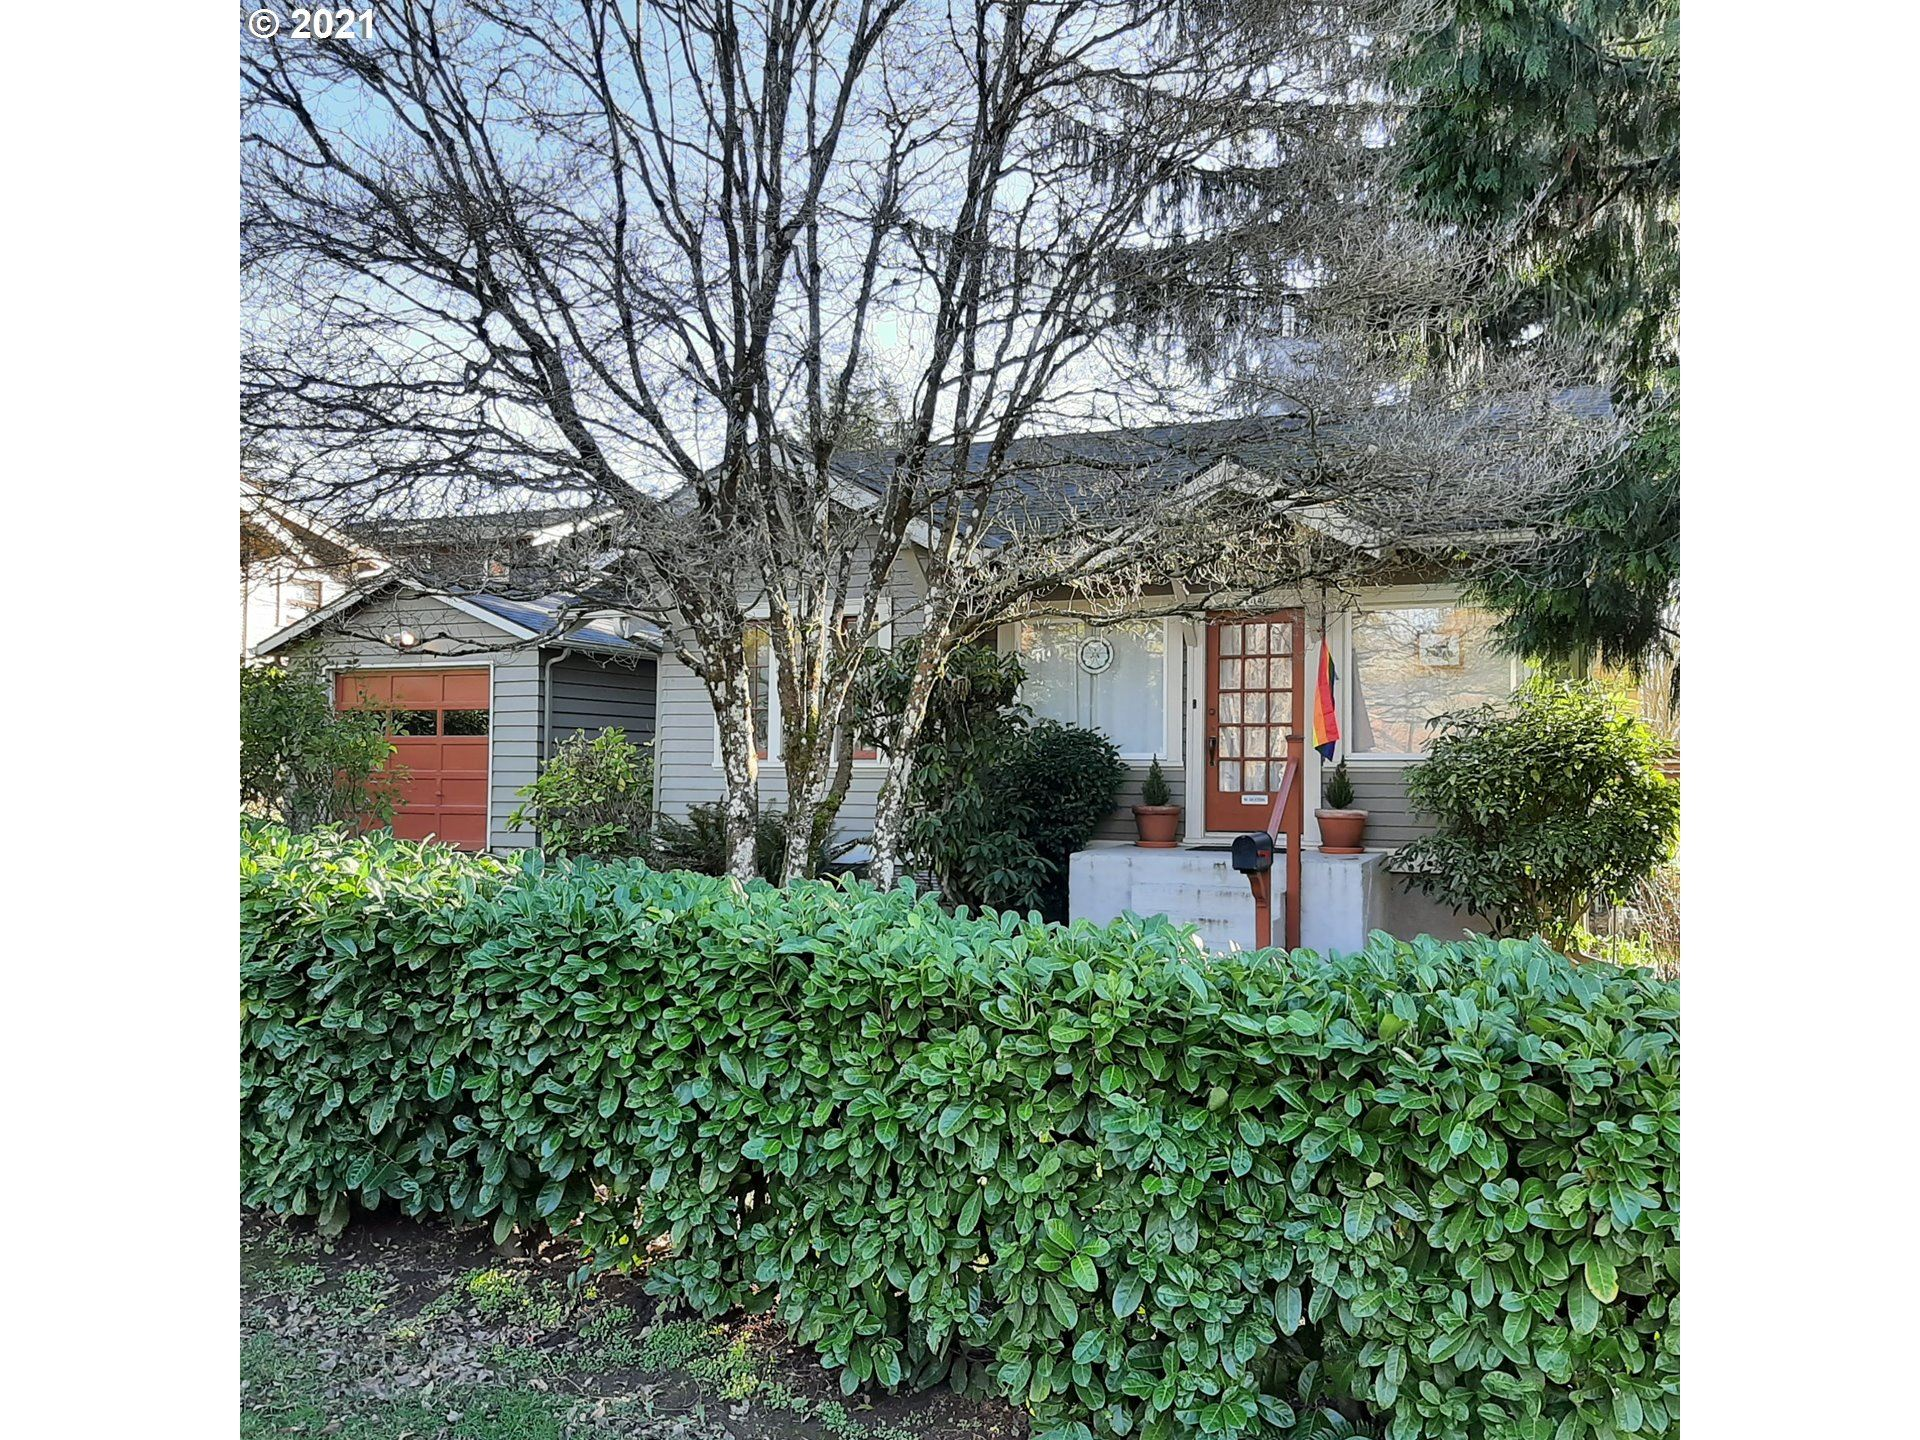 7244 SE LINCOLN ST, Portland, OR 97215 - MLS#: 21469321